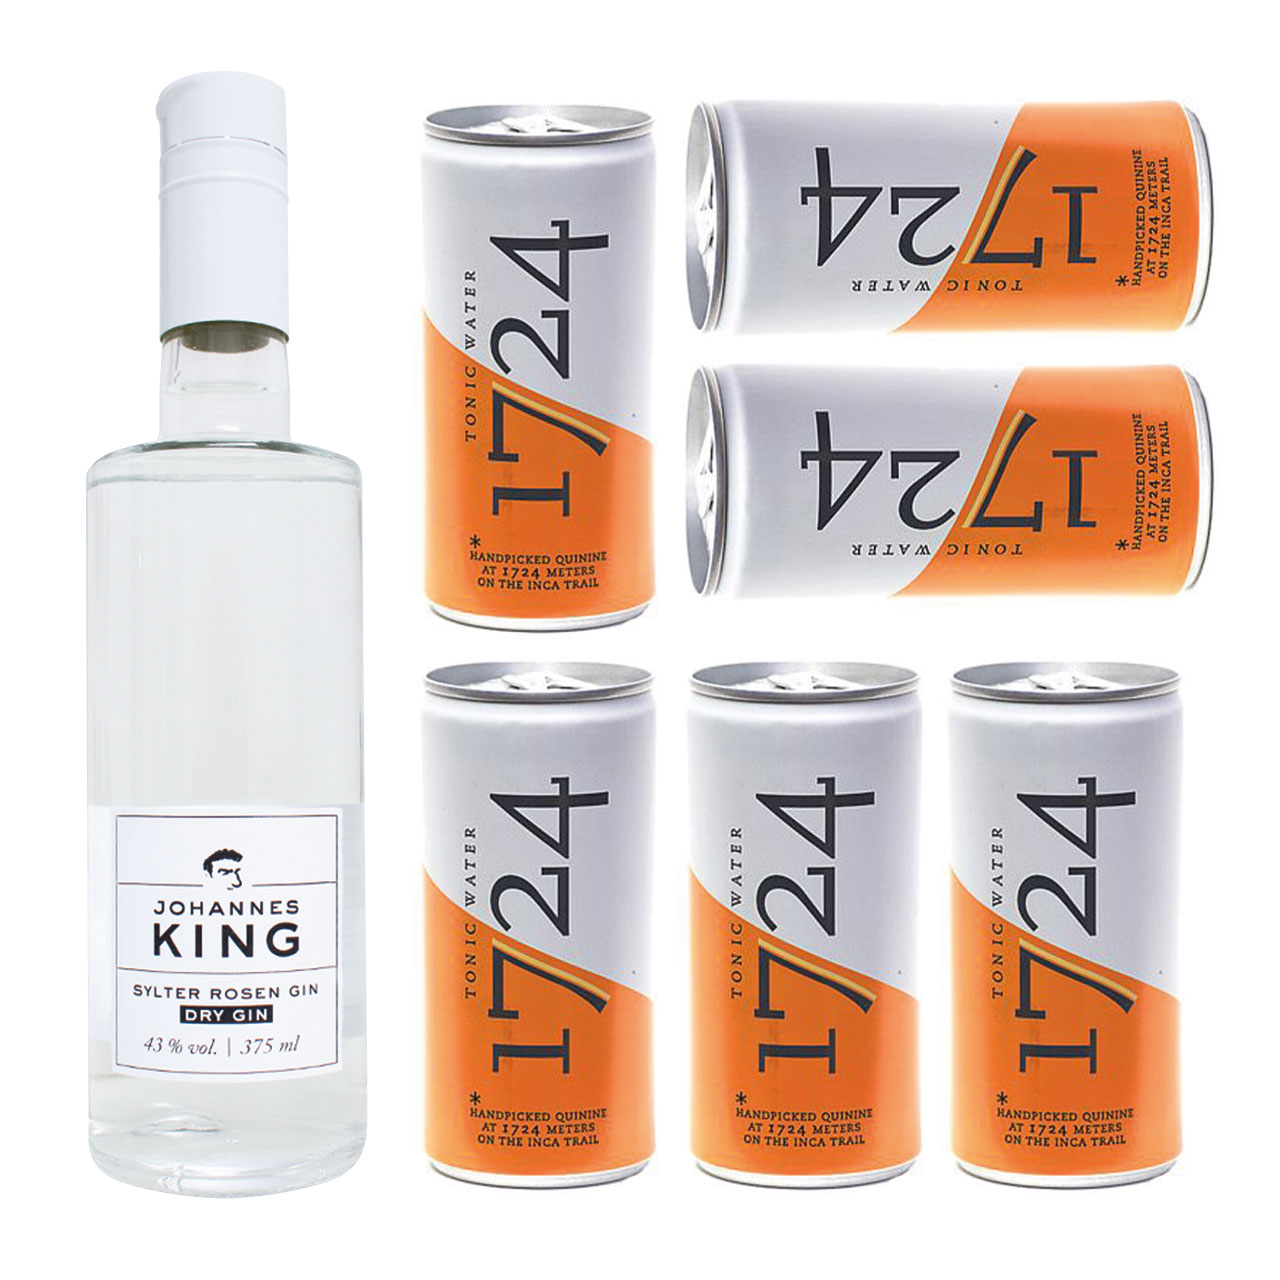 Kings Sylter Rosen Gin & 1724 Tonic Water Set